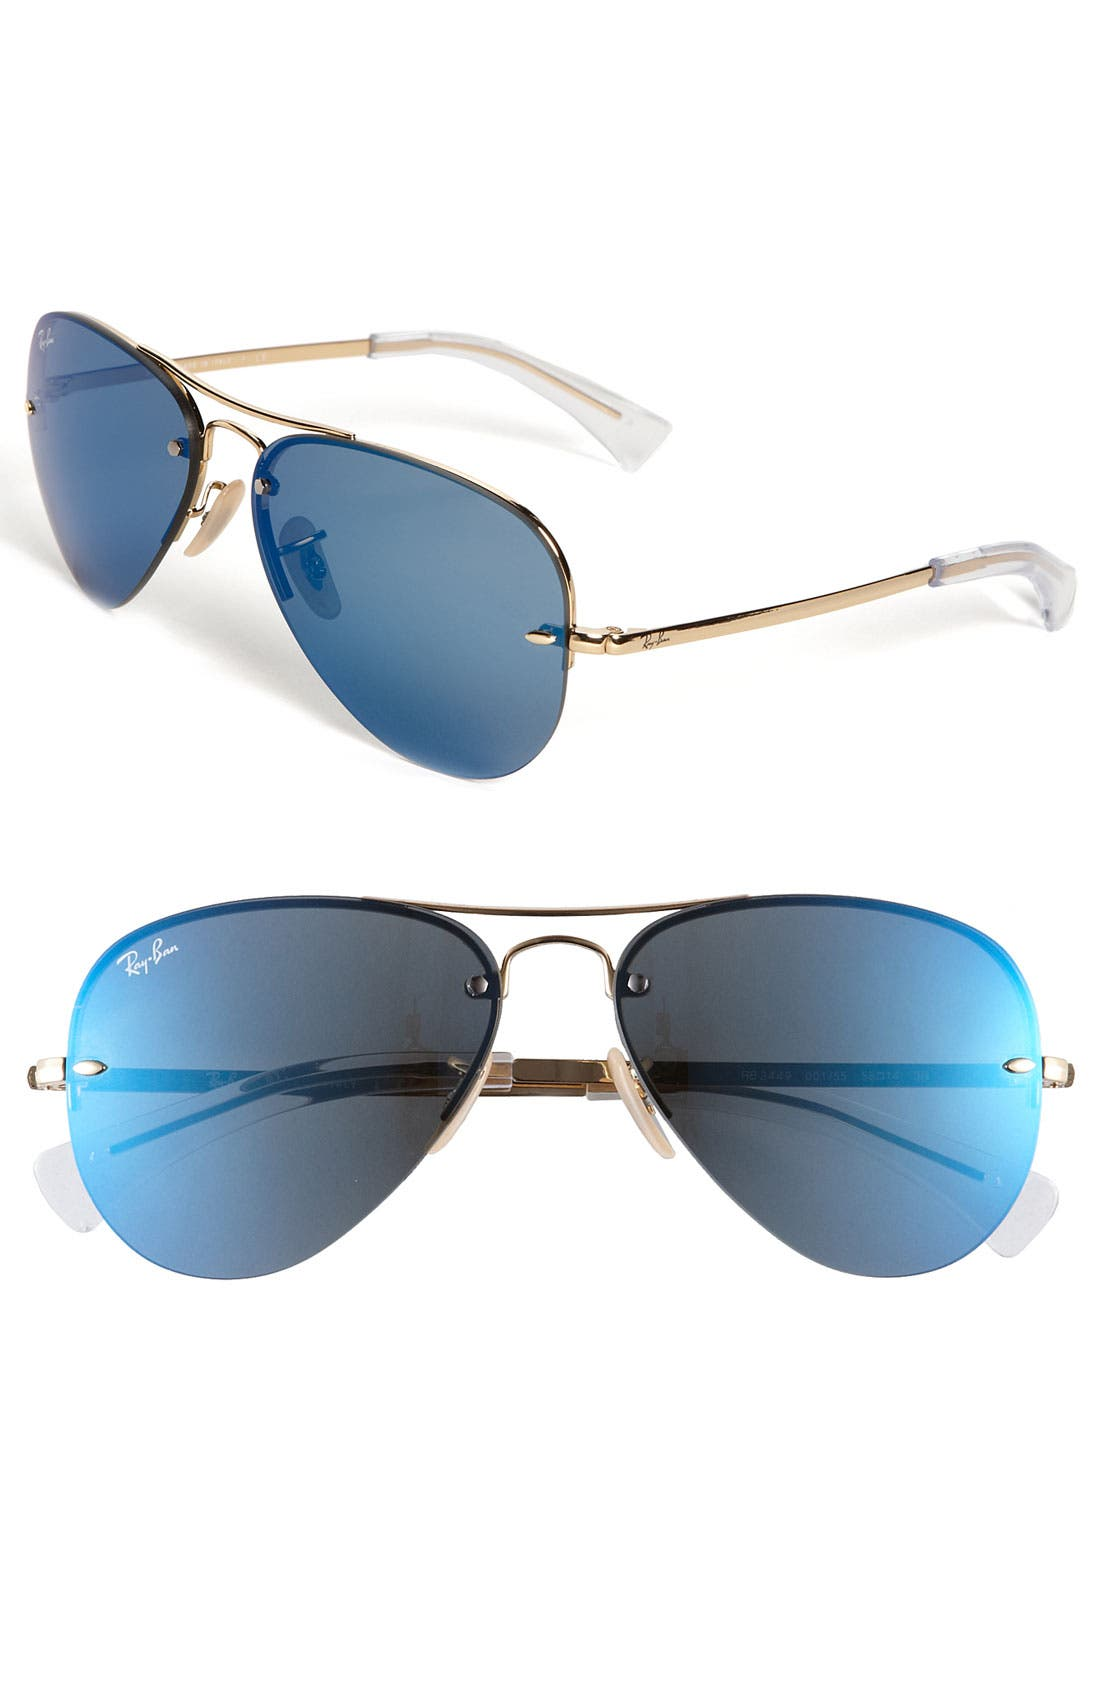 Alternate Image 1 Selected - Ray-Ban 56mm Semi Rimless Lightweight Aviator Sunglasses